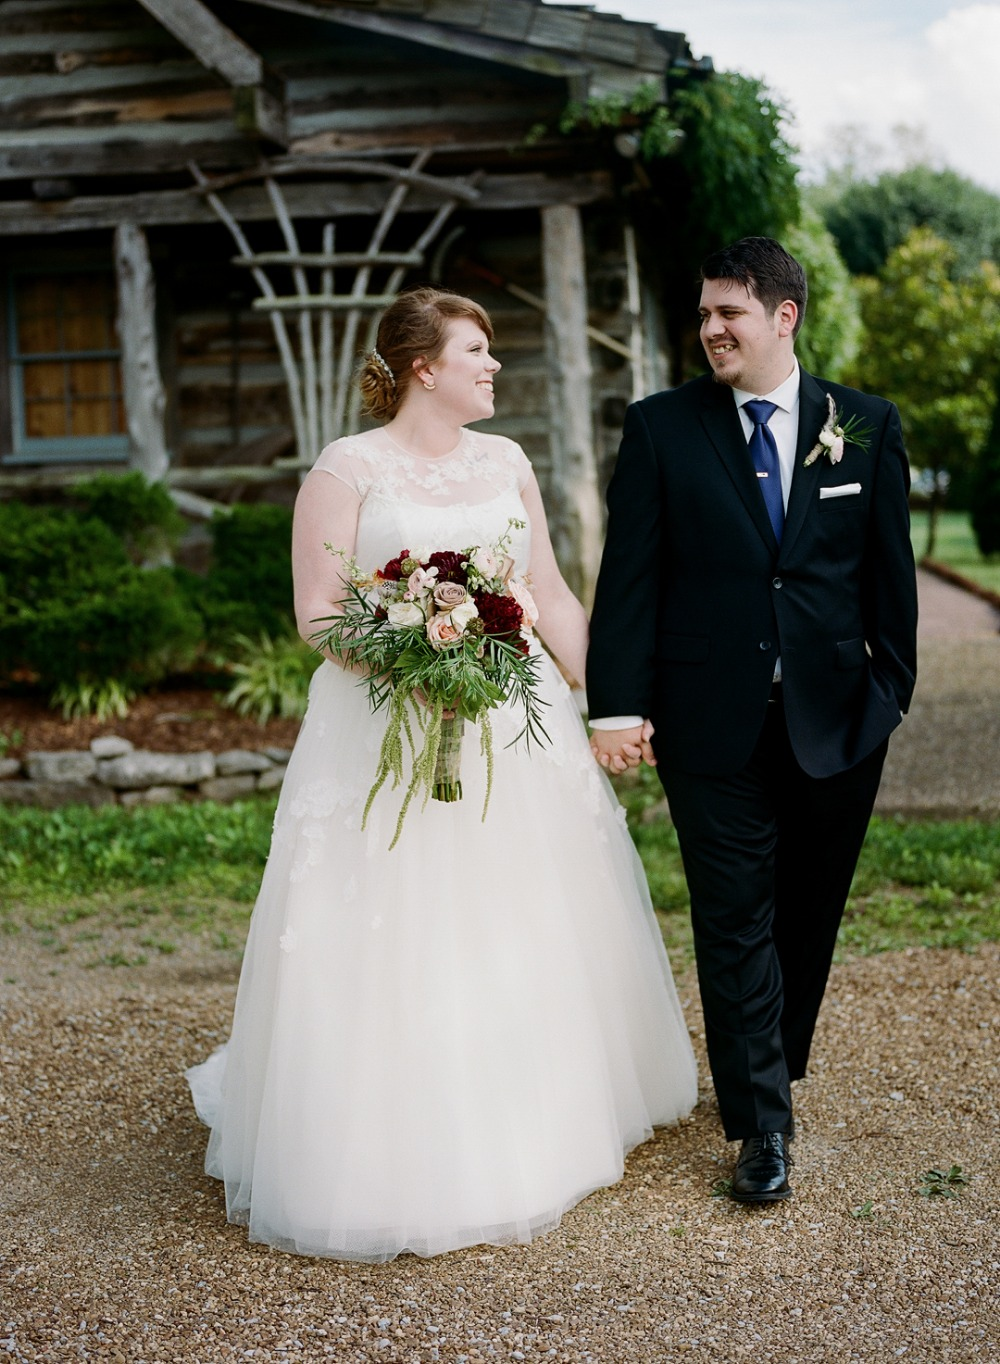 Beautiful bride and handsome groom